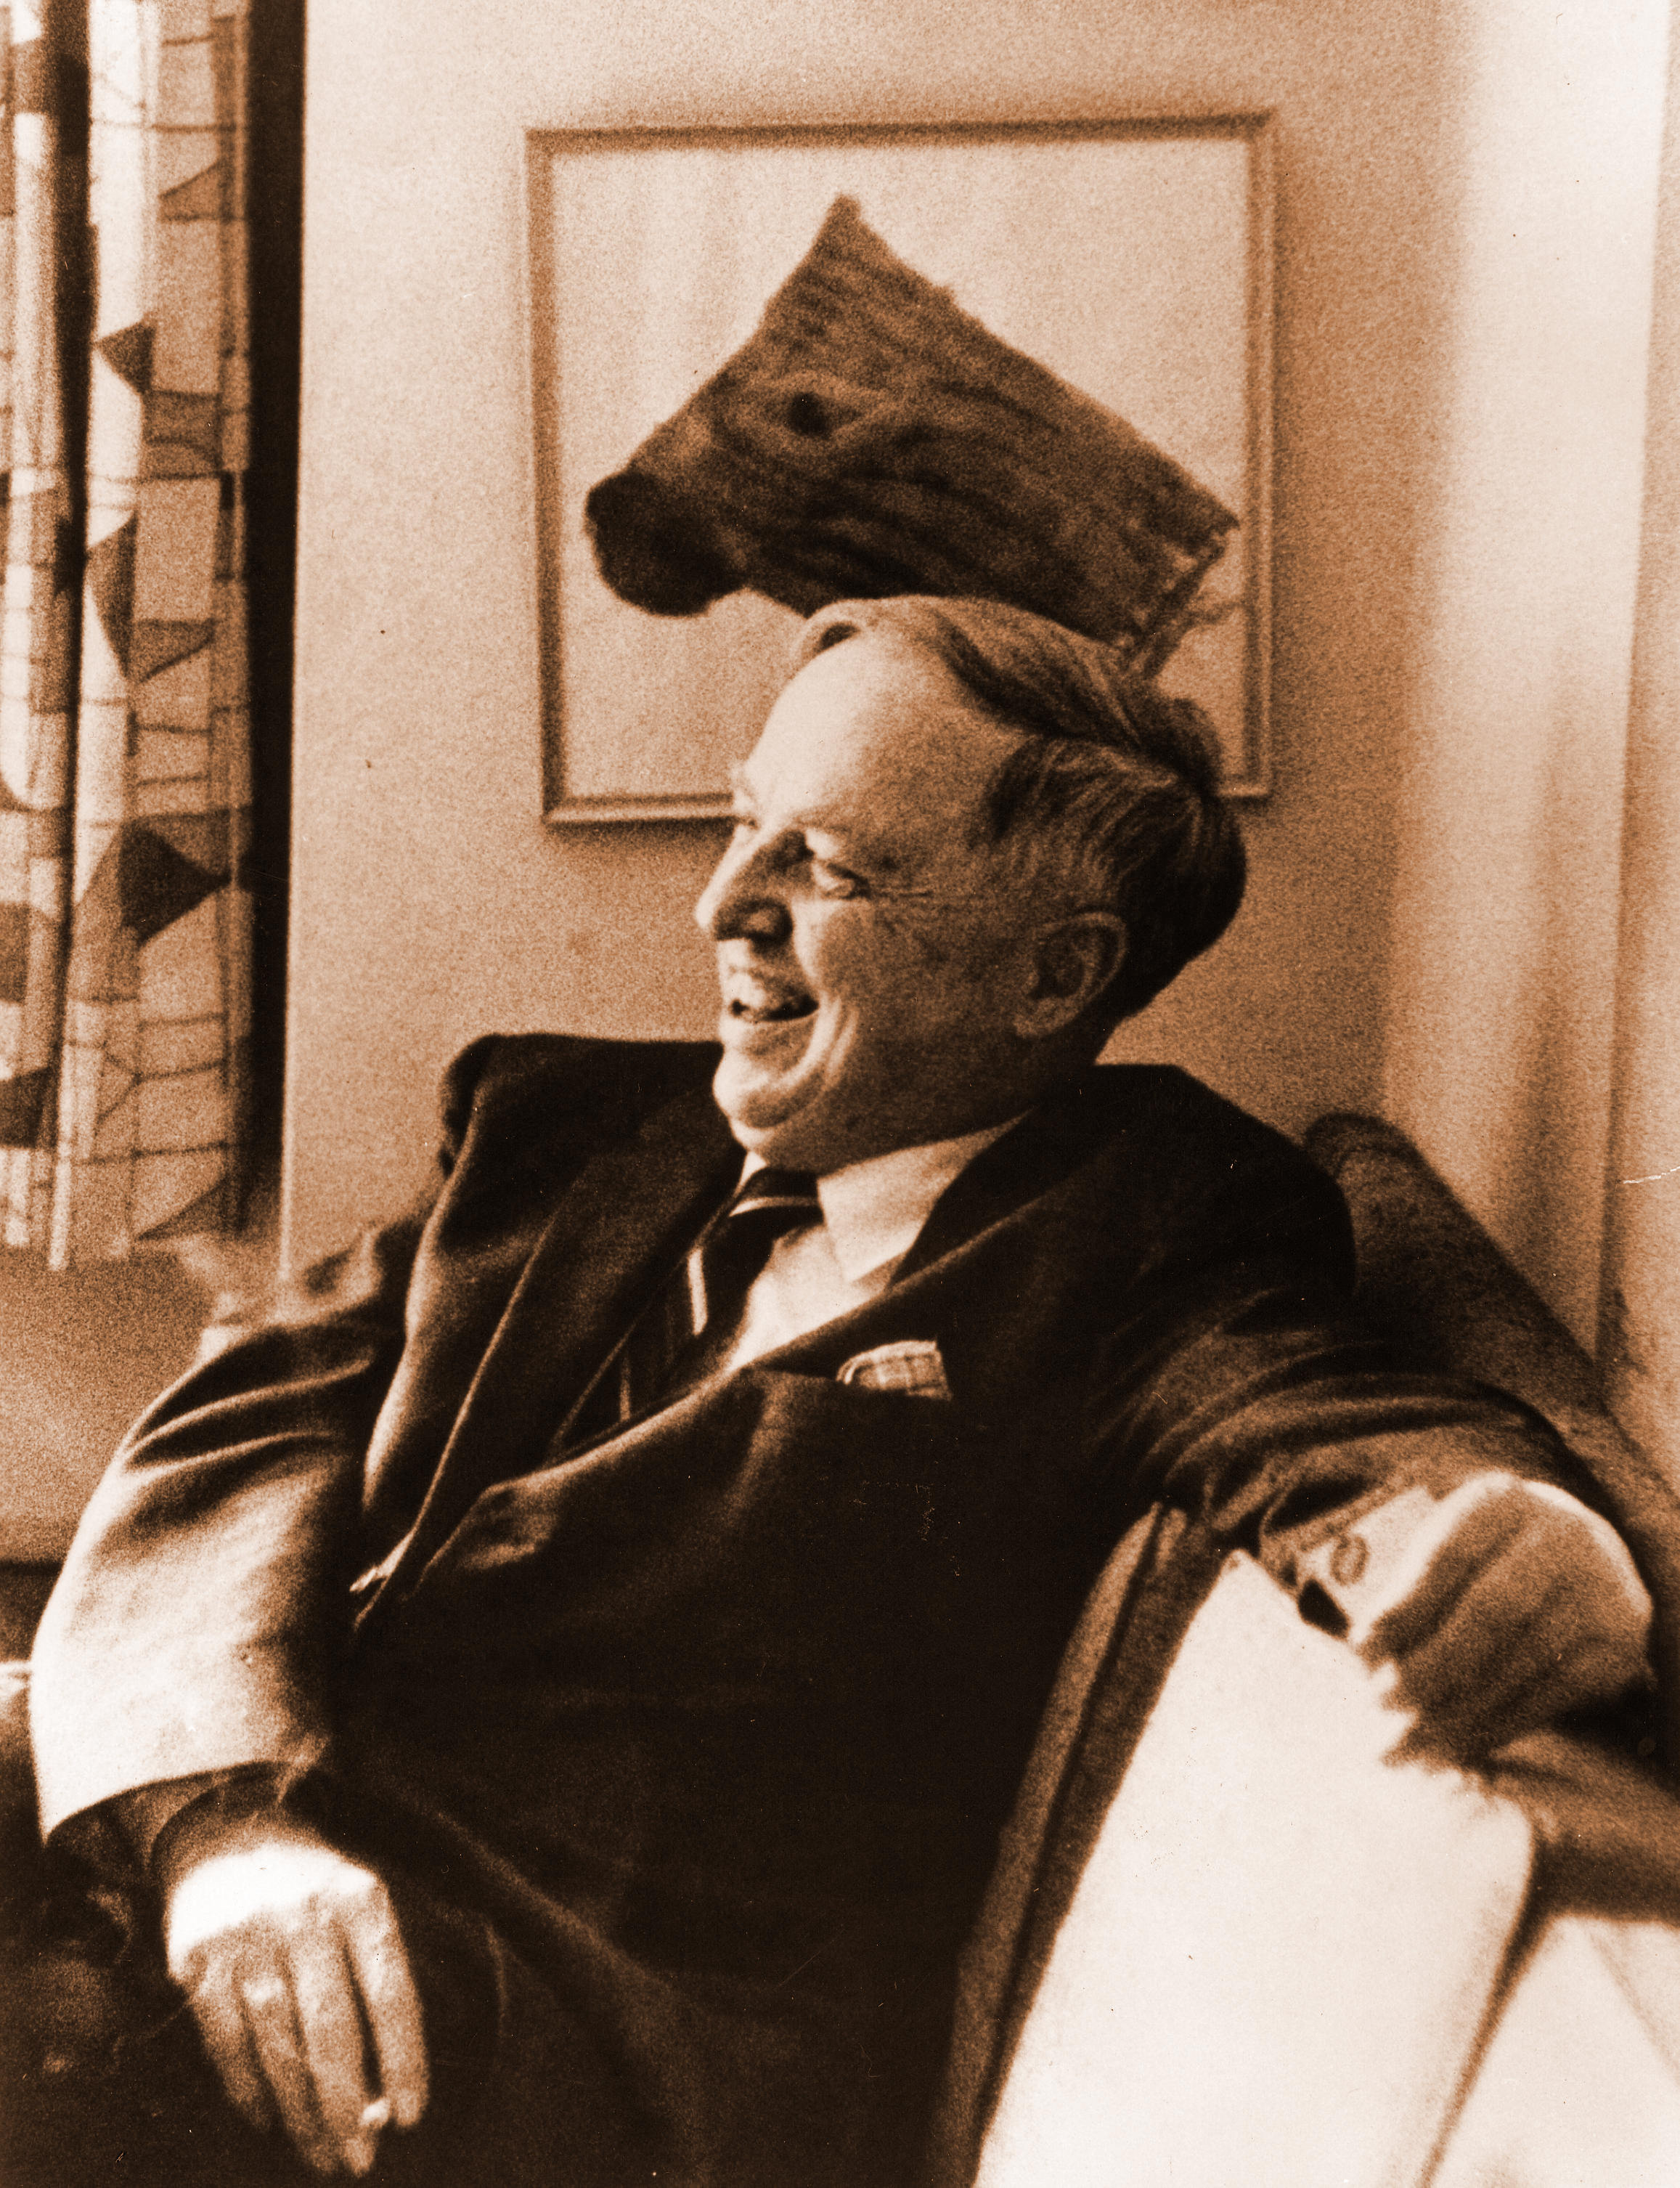 Harlow Shapley in his living room in Sharon, New Hampshire, 1966.  Photo source: ESVA, Shapley Collection